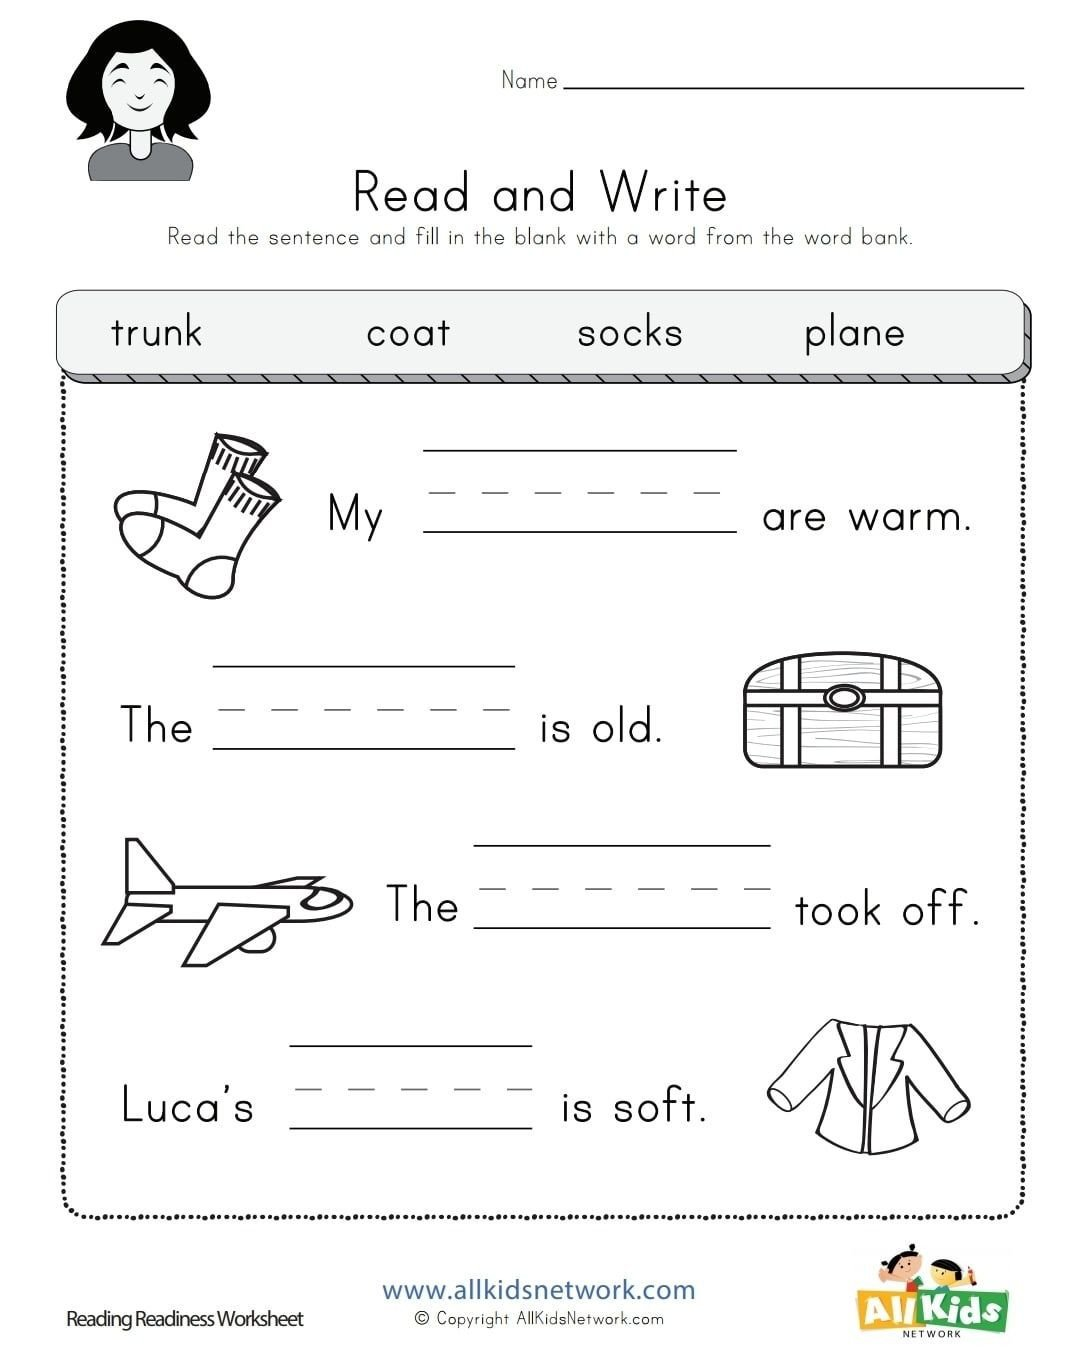 20 Reading Readiness Worksheets